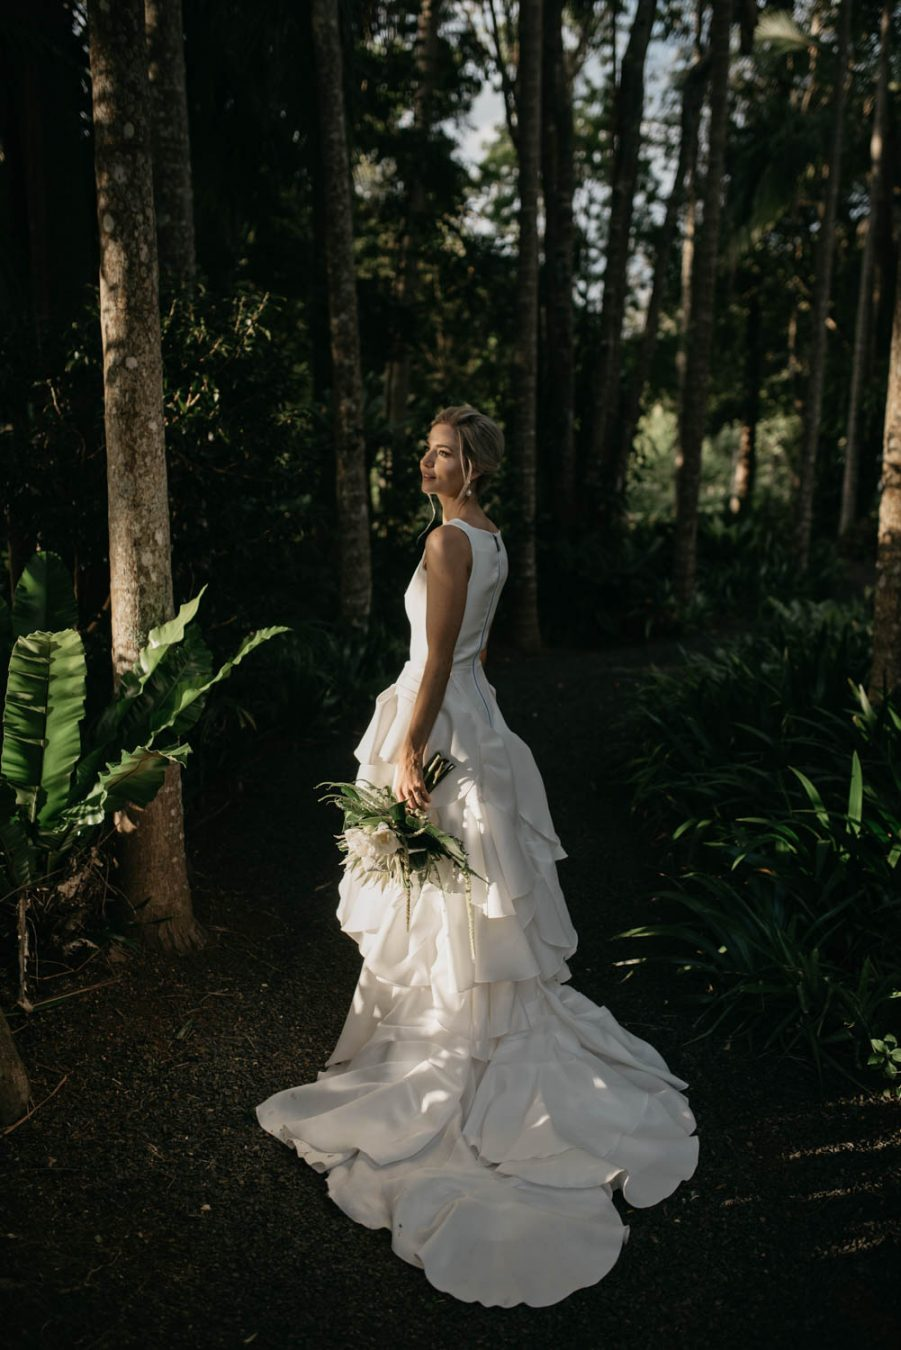 Bride in greenery / Elopement photography